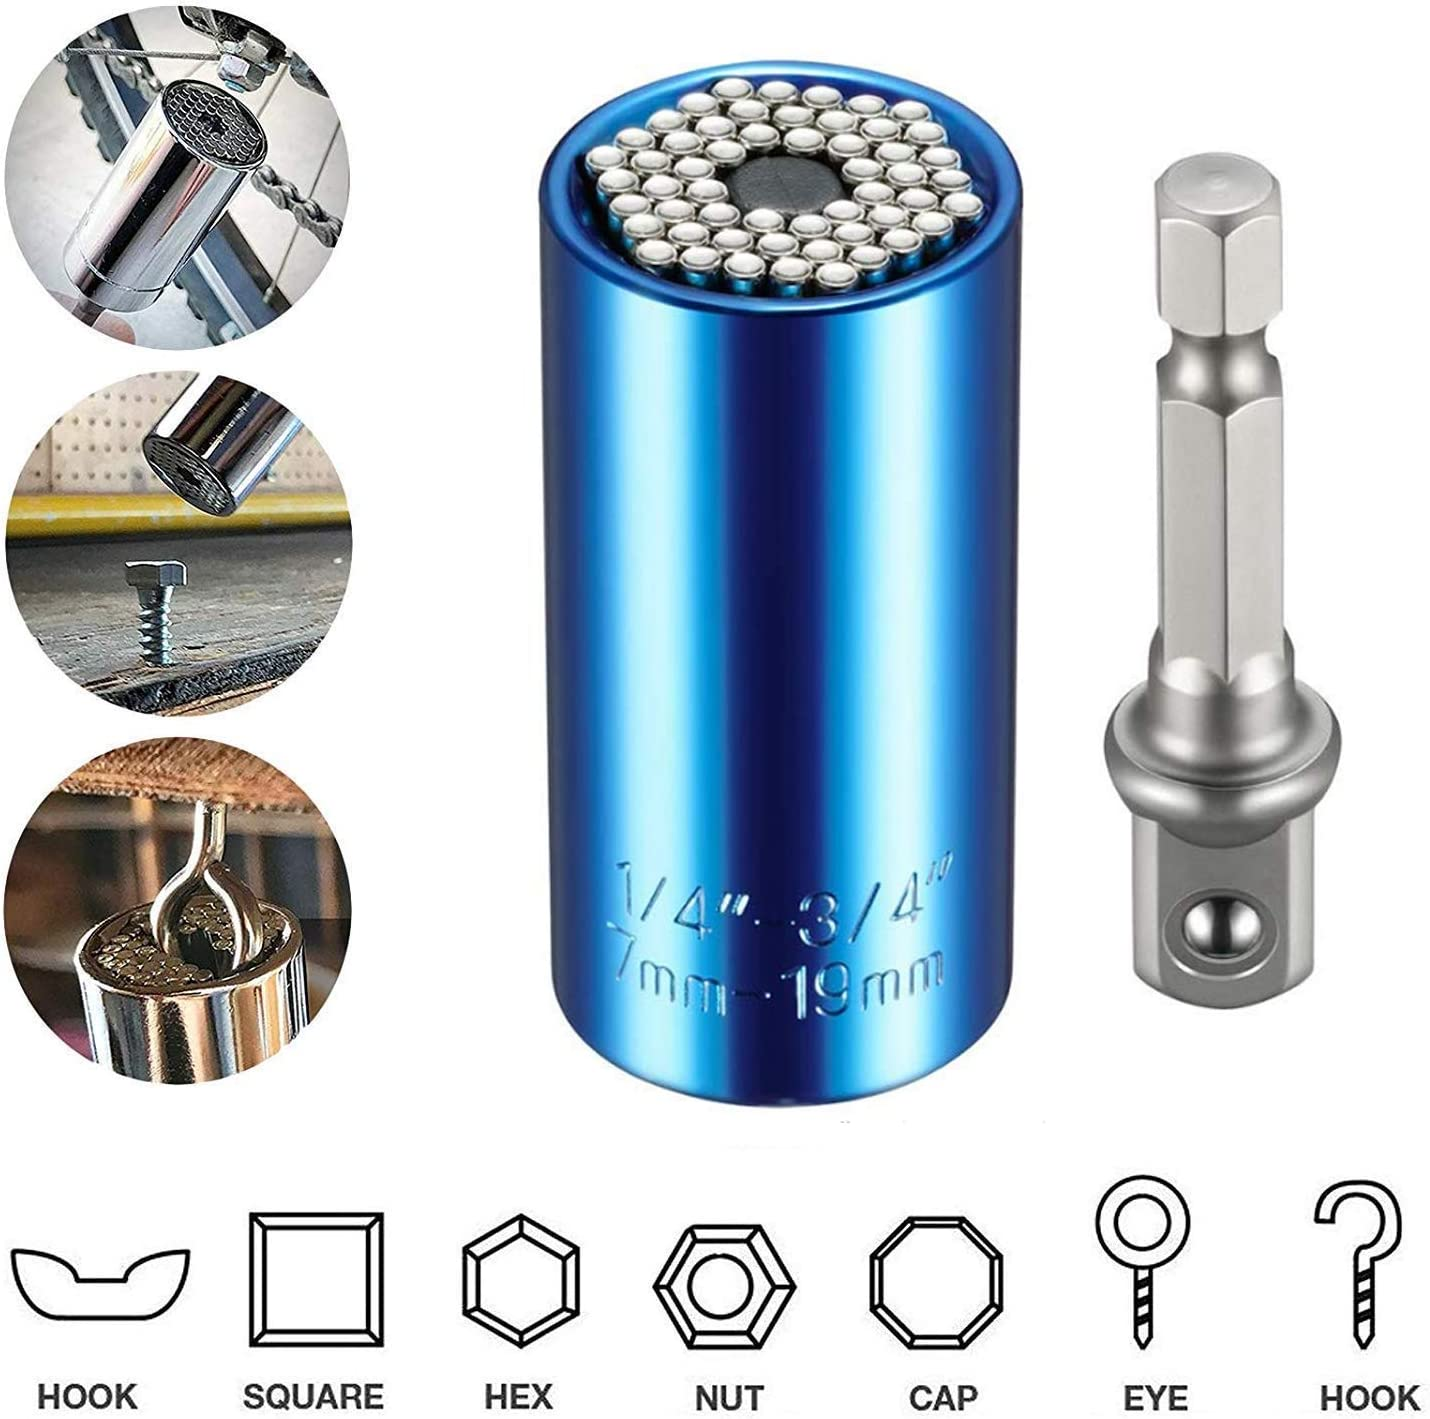 Blue 7-19mm Universal Socket PONFLY 1//4-3//4 Professional Sockets Tools 6Pcs Multi-function Wrench Repair Kit with Power Drill /& Ratchet Wrench Adapter Chrome Vanadium Steel